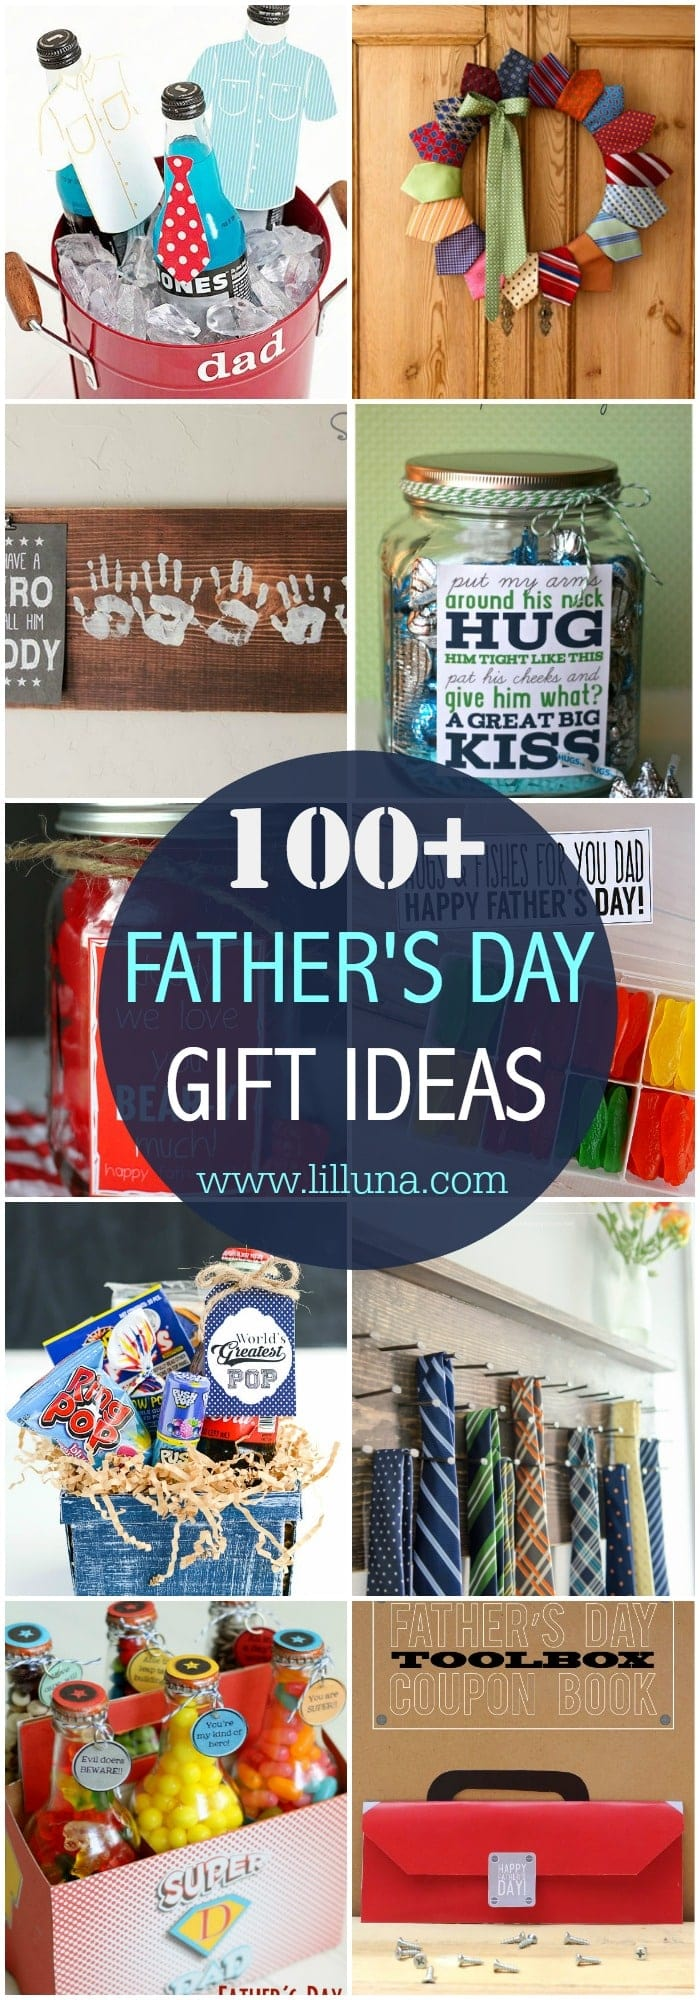 31d1511a 100+ Easy, cute and inexpensive Father's Day Gift Ideas! From food gifts to